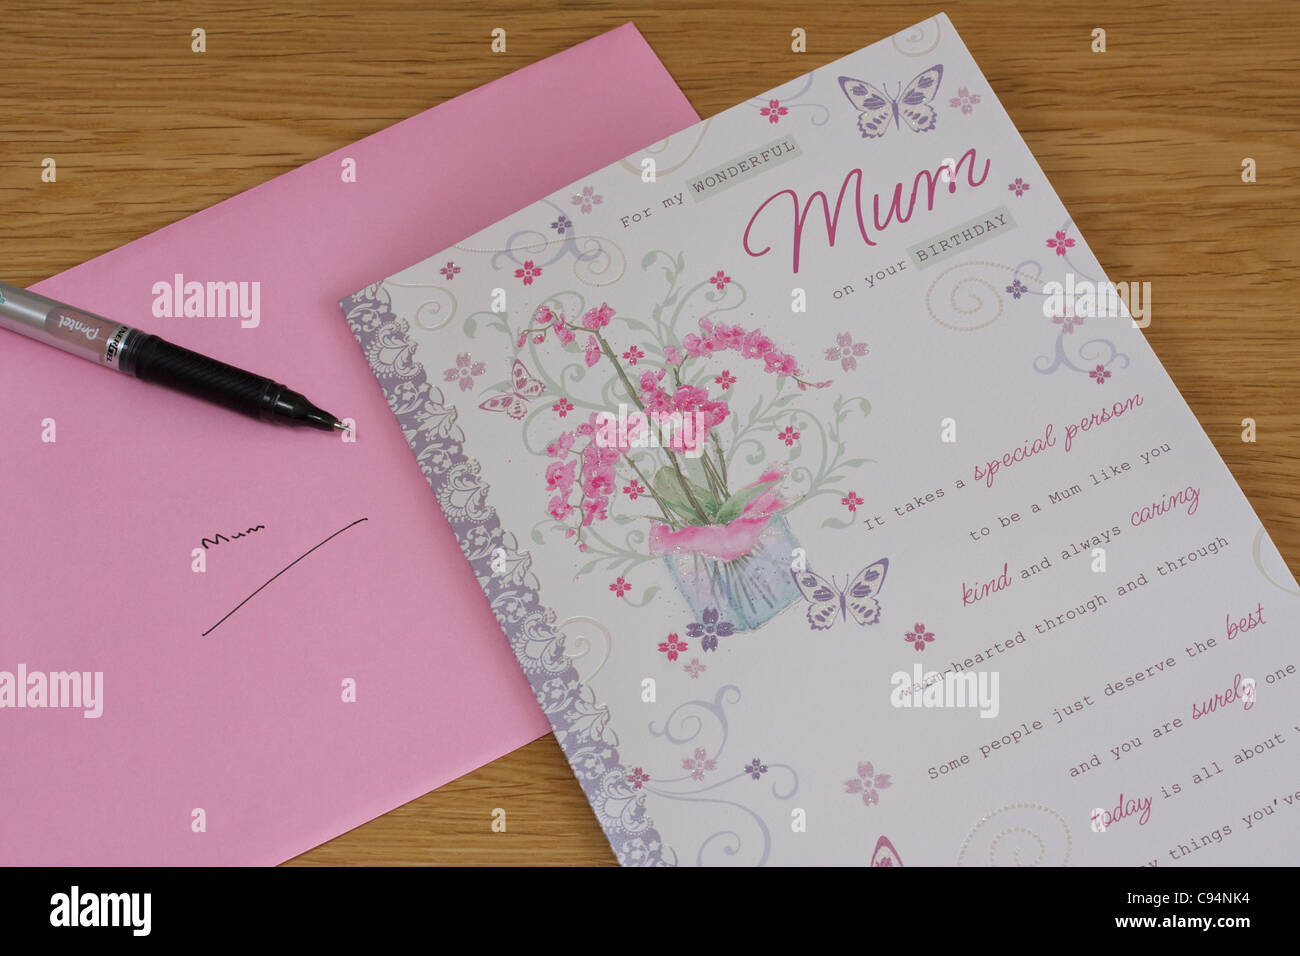 birthday card pen and pink envelope against wooden table background